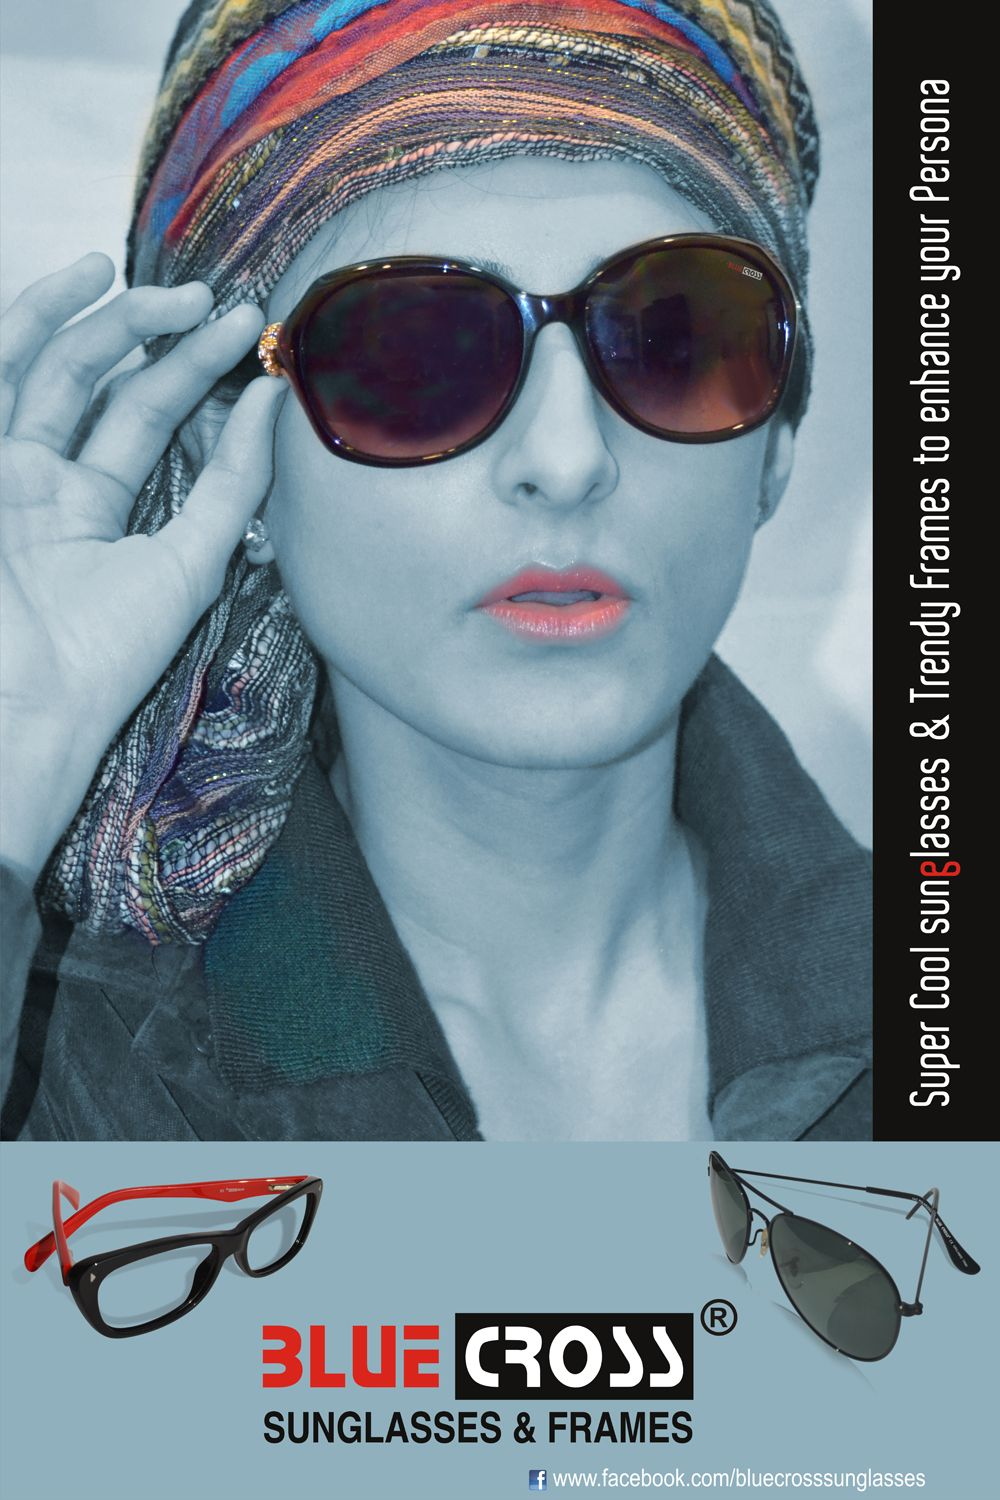 #BlueCross #BlueCrossEyewear #Sunglasses and #Frames Check out our wide range of super-cool sunglasses and trendy frames to add more colour in your 50 shades of grey!  For more details visit: http://buff.ly/1p97om3